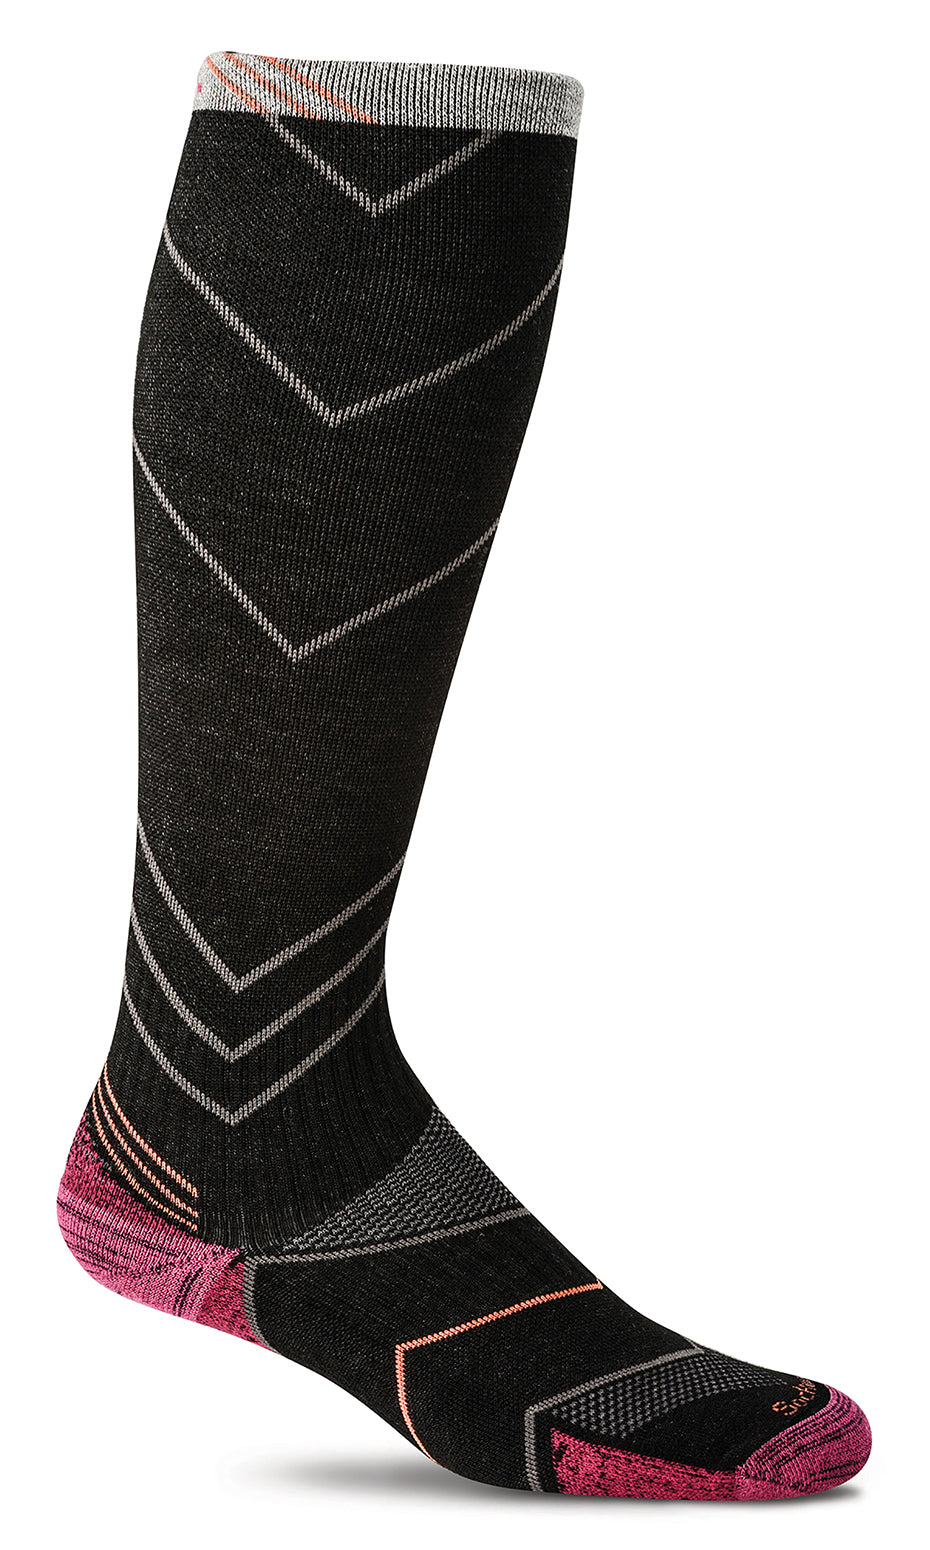 Incline Knee-High - Black Moderate Compression (15-20mmHg)